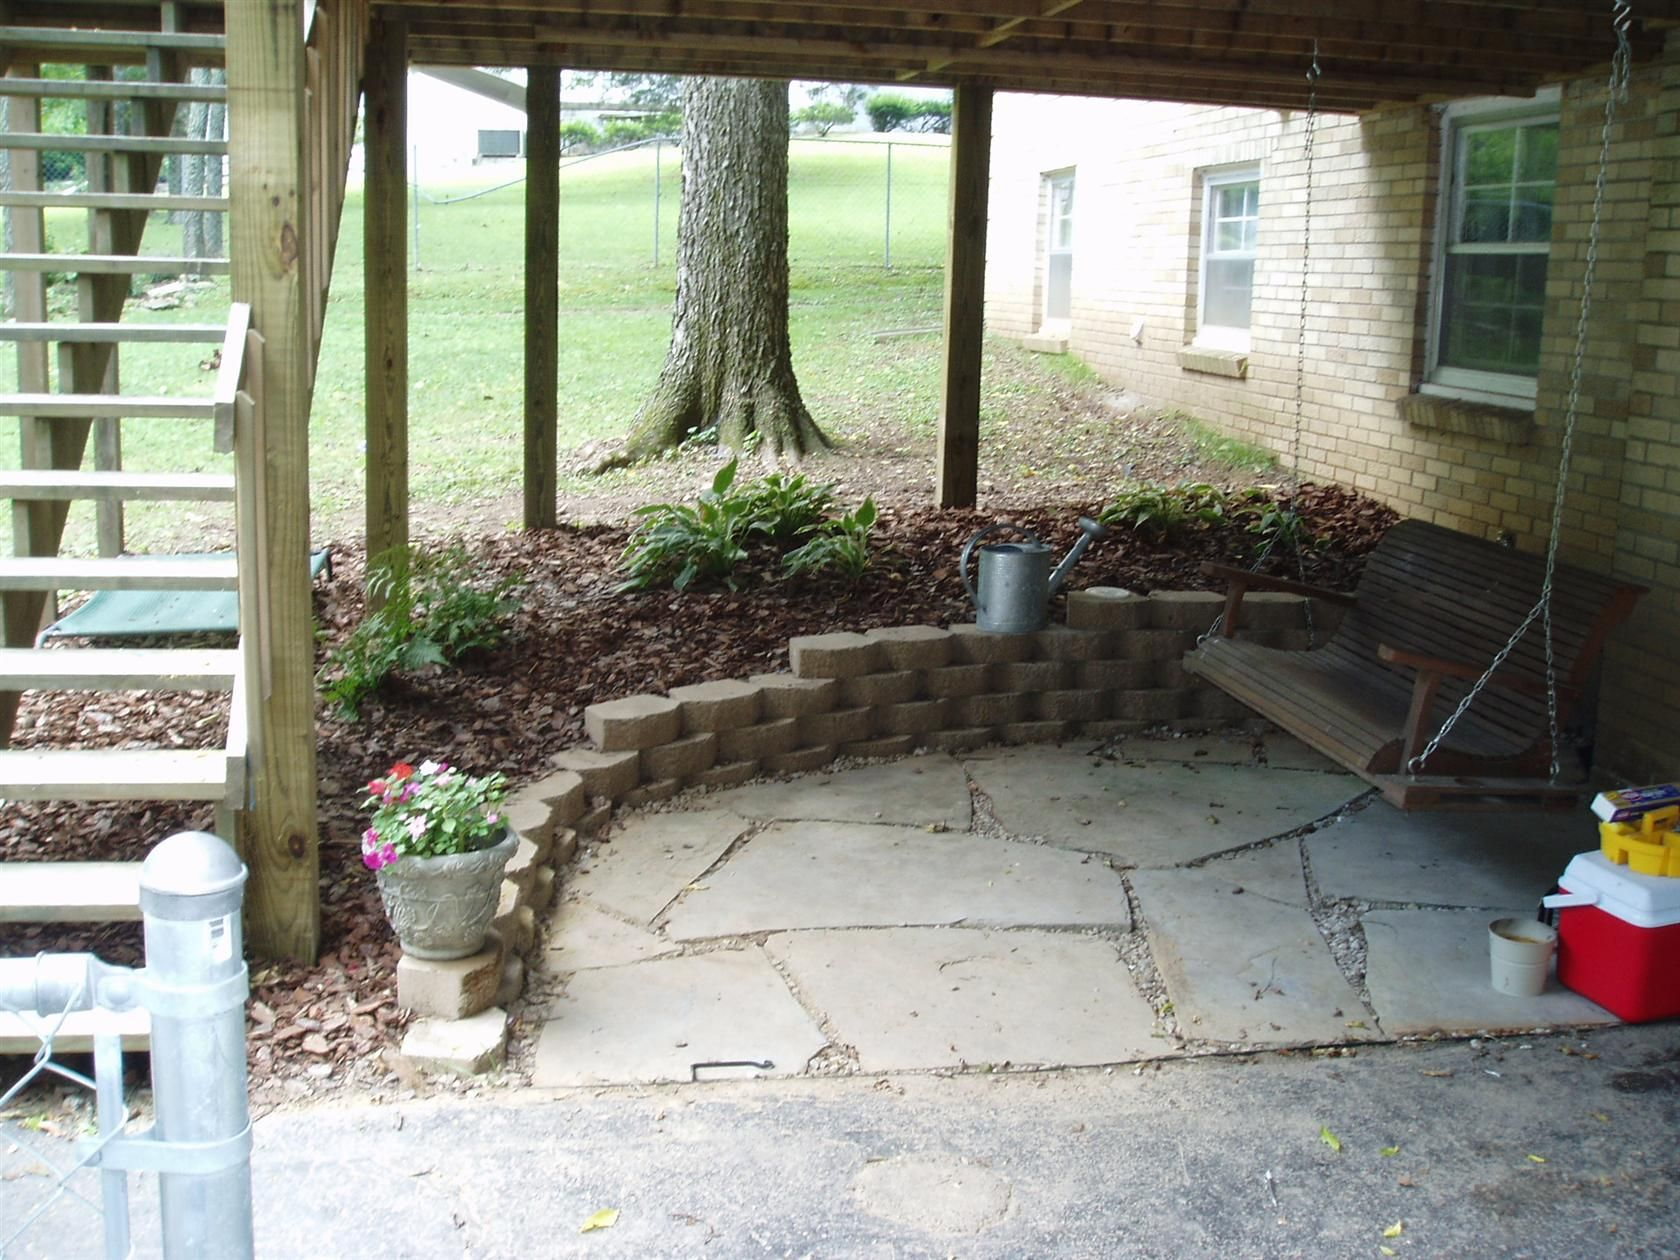 under the deck swing and patio | Deck remodeling | Pinterest ...